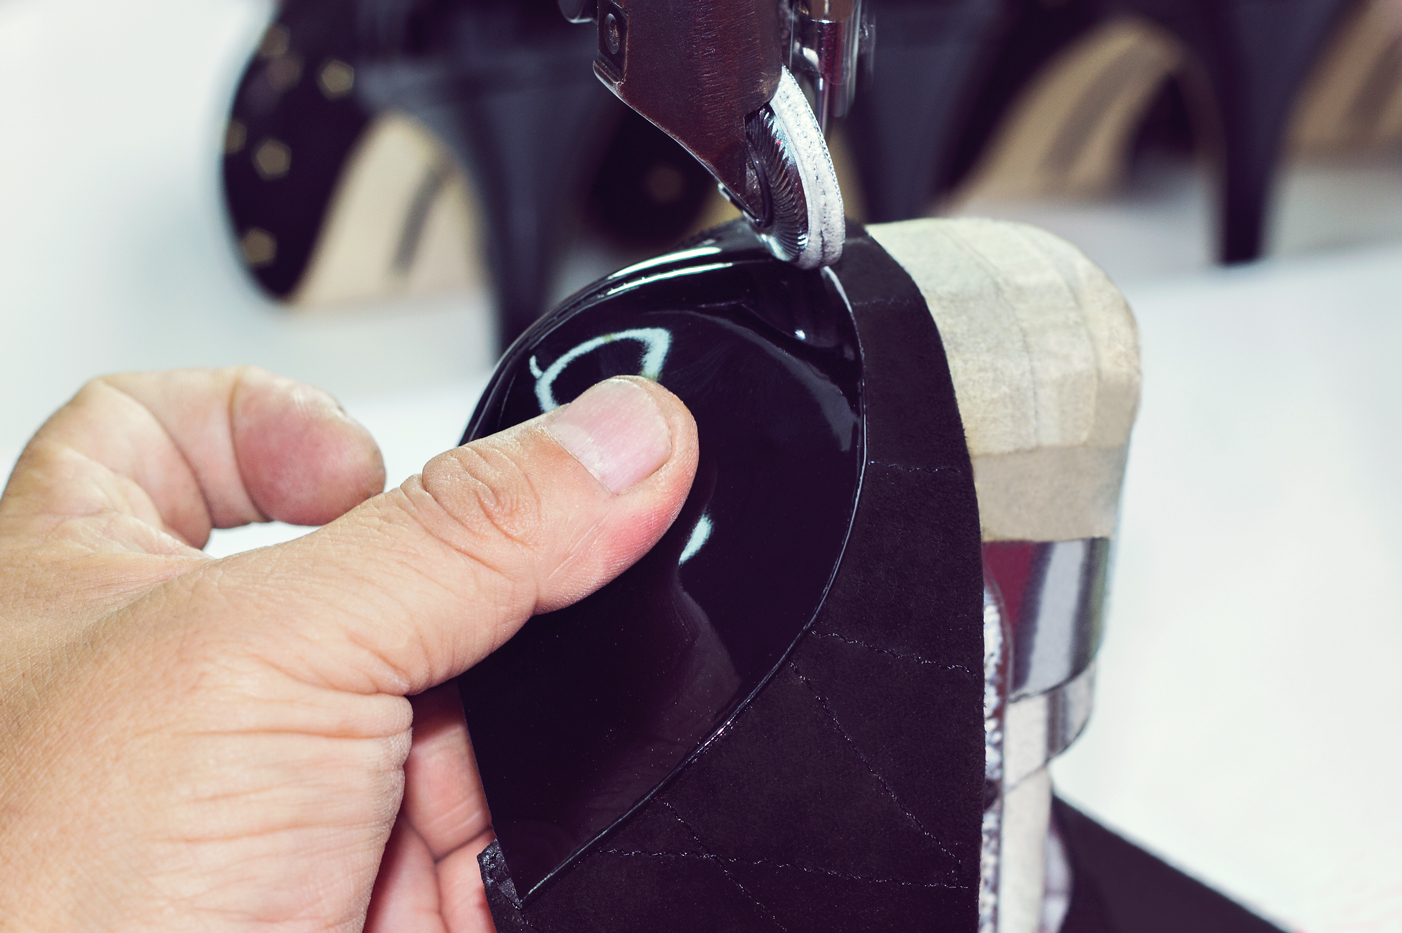 Bipolar shoes in production!